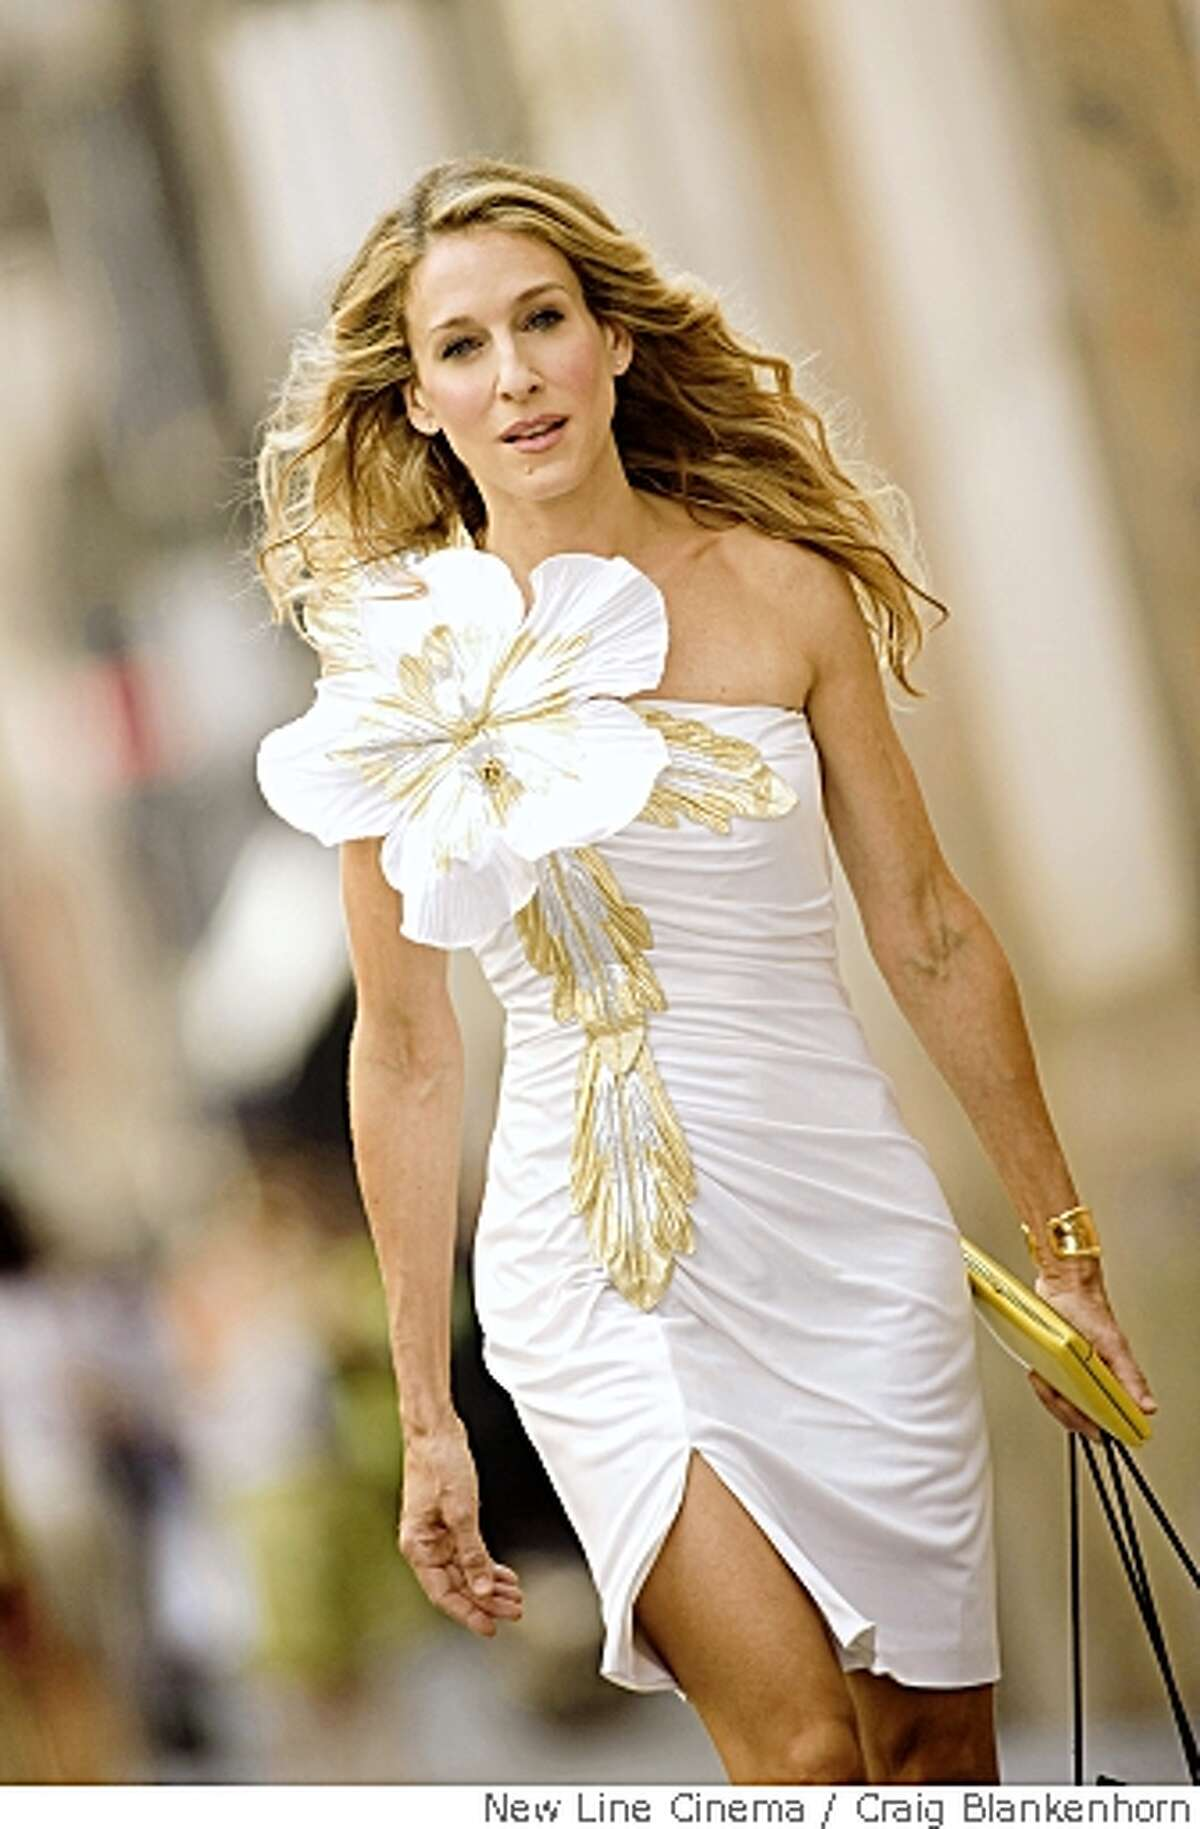 """In this image released by New Line Cinema, Sarah Jessica Parker stars as Carrie Bradshaw in New Line Cinema's """"Sex in the City"""". (AP Photo/New Line Cinema,Craig Blankenhorn) ** NO SALES **"""